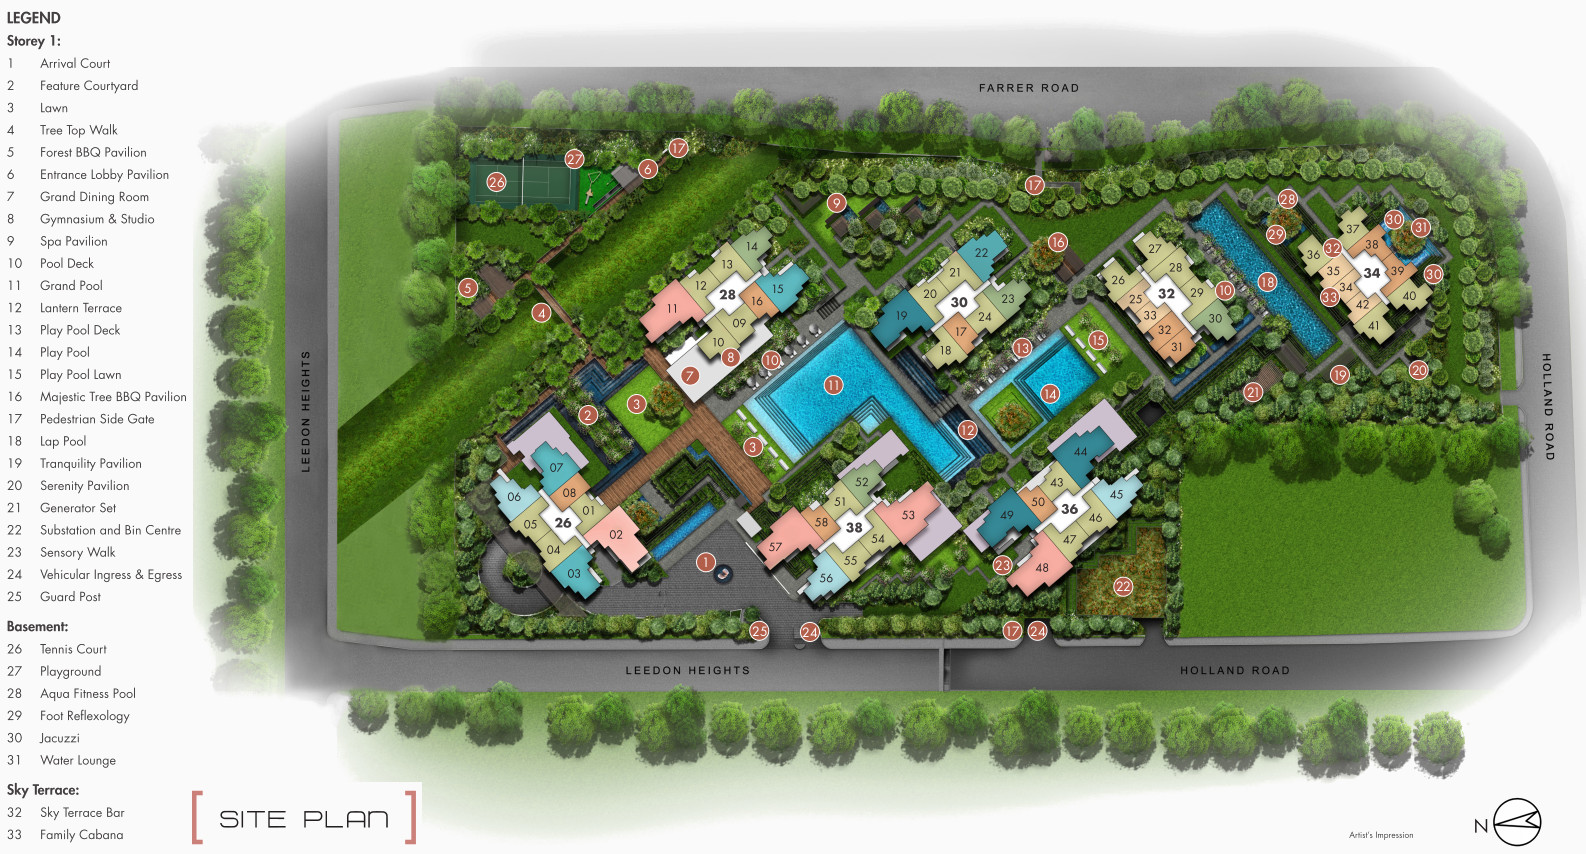 Leedon Green Site Plan Layout